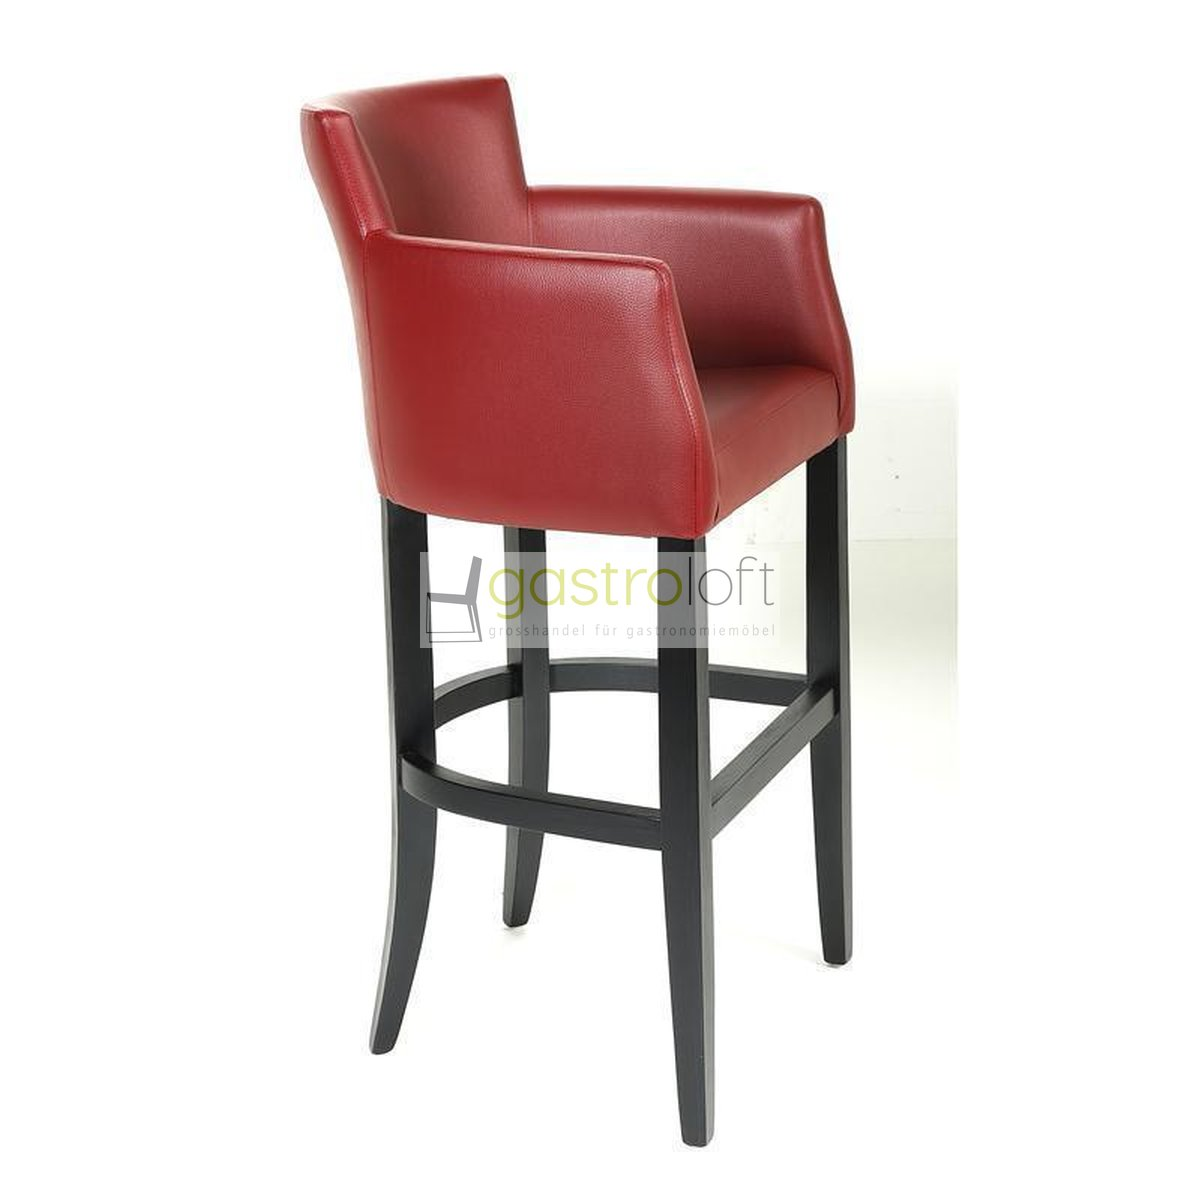 Barhocker Mit Lehne Casino Bar Plus Gastronomie Barhocker Mit Armlehne Select Color